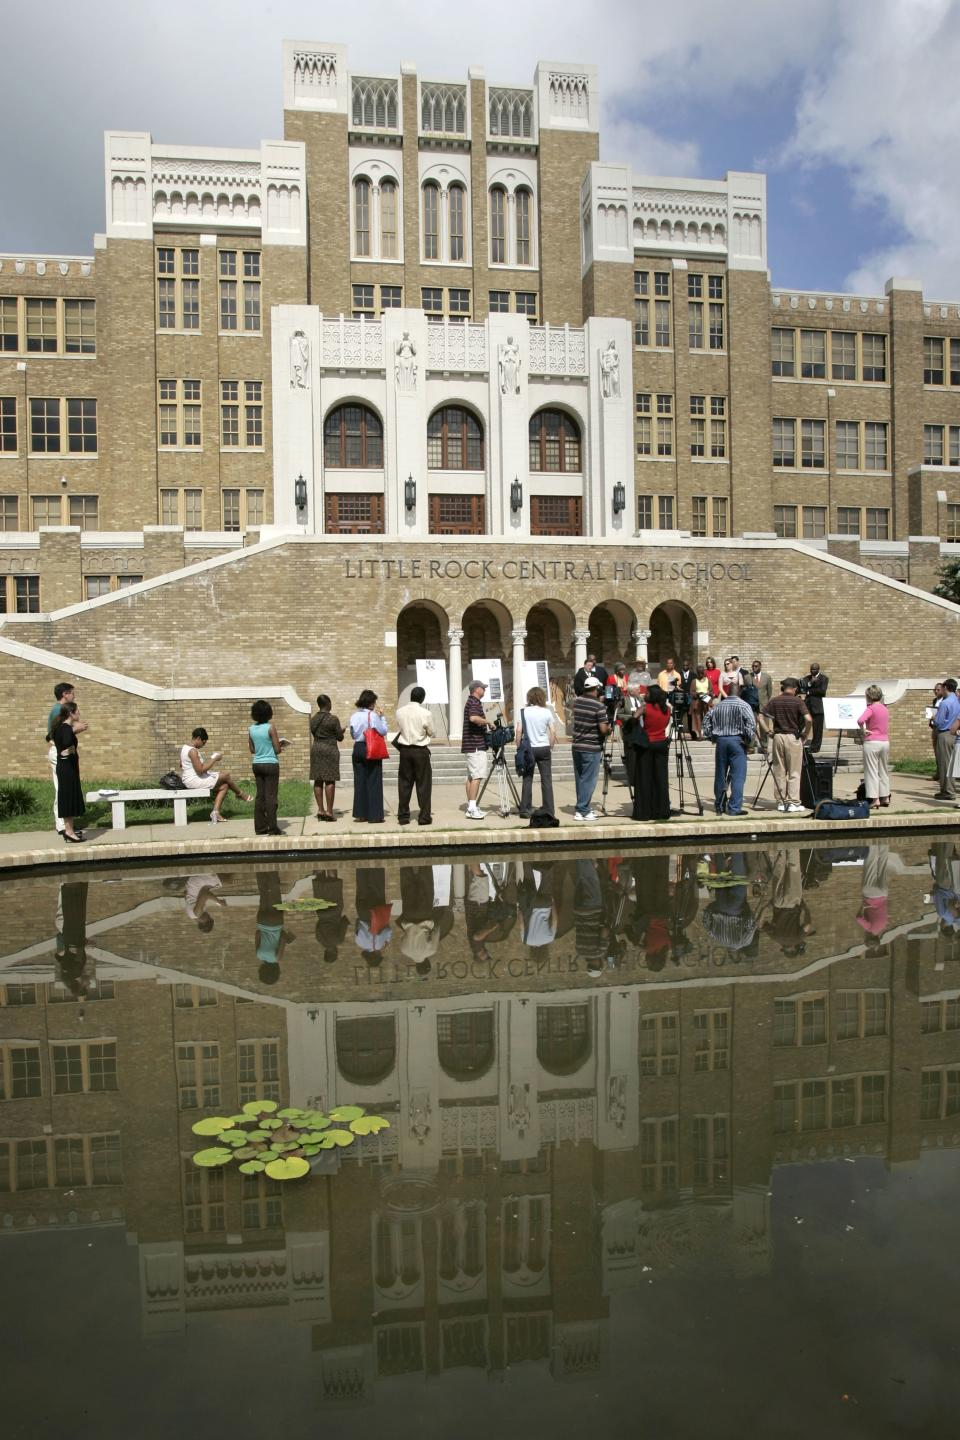 FILE - In this July 16, 2007 file photo, the image of Little Rock Central High School is reflected in a pond during a news conference in Little Rock, Ark. Nine black students desegregated the school in September 1957. (AP Photo/Danny Johnston, File)